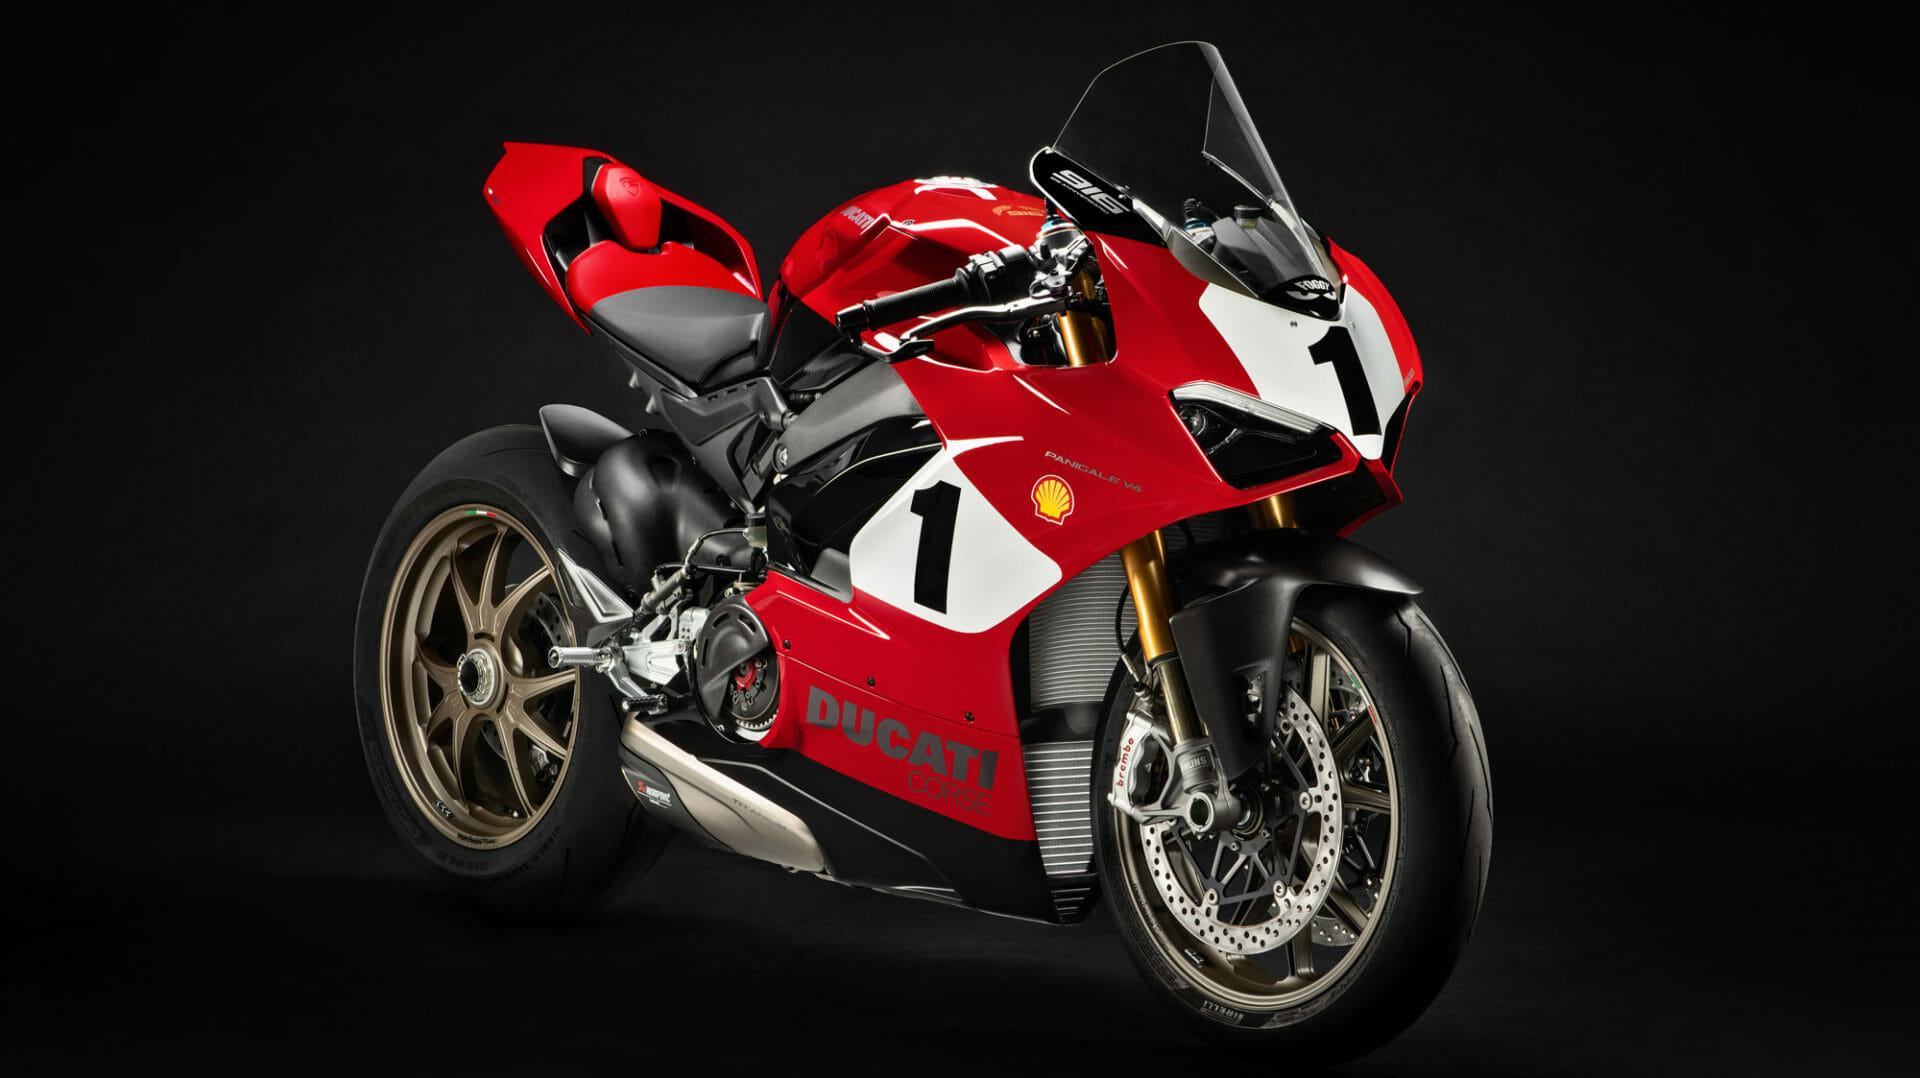 Auction: Panigale V4 25 ° Anniversario 916 in favor of the Carlin Dunne Foundation